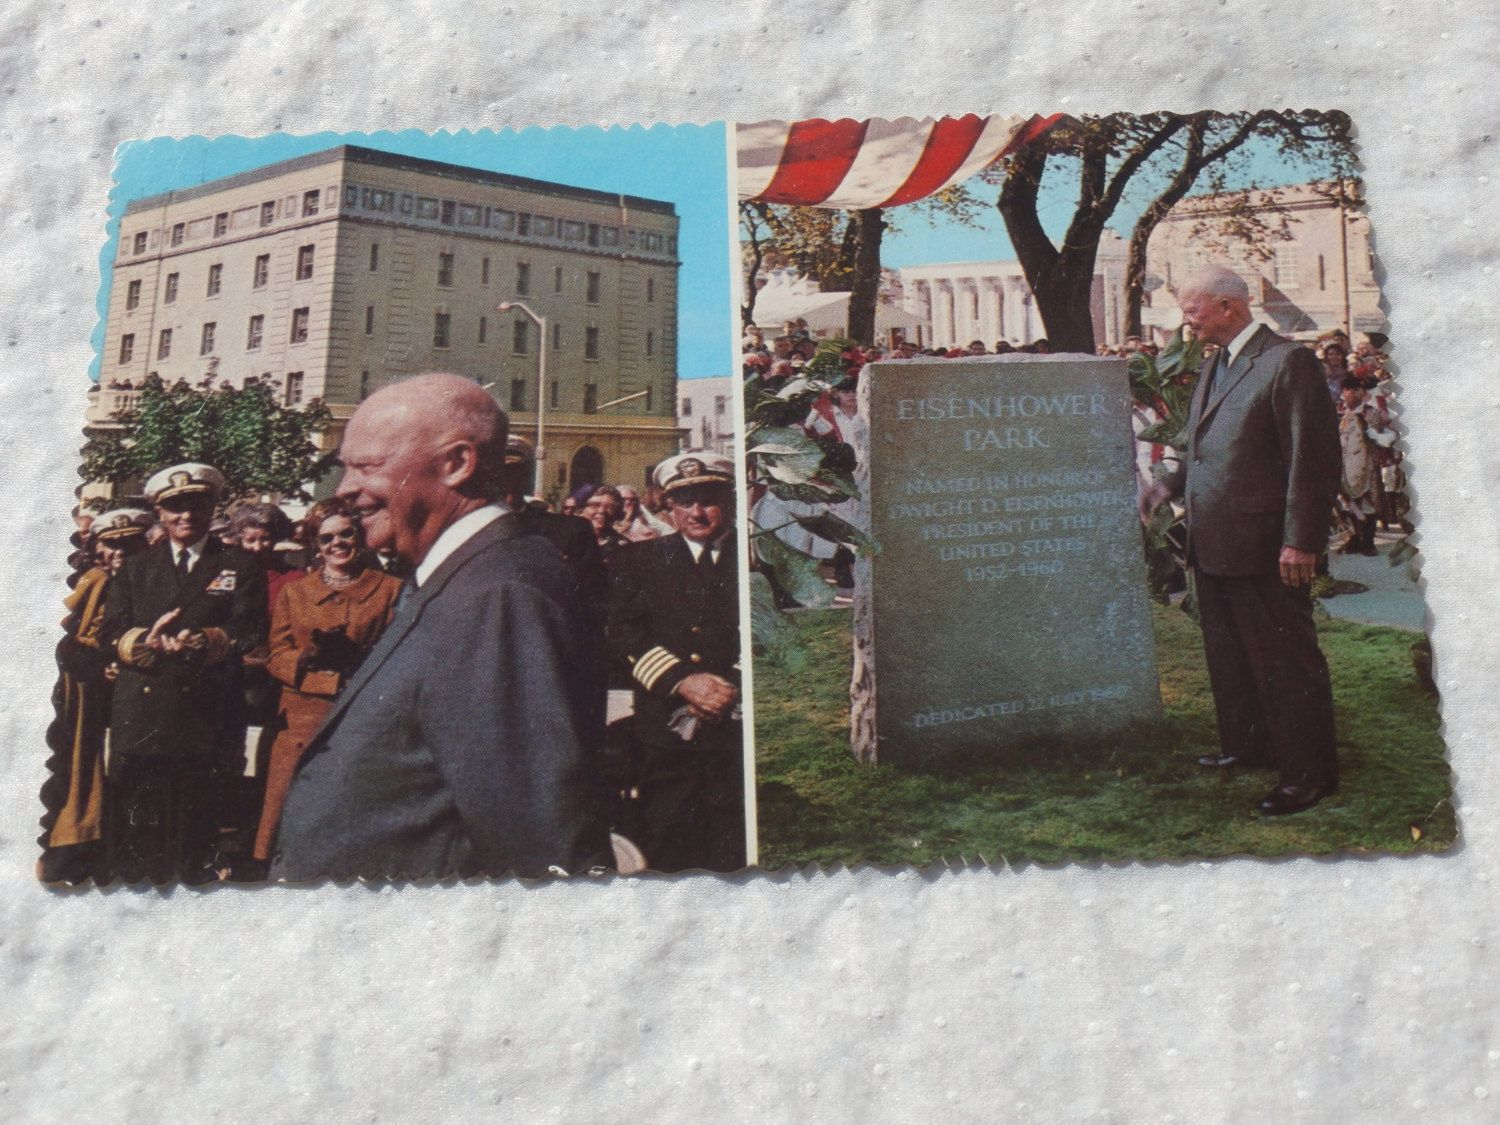 Dwight D. Eisenhower Postcard, Dedication of Park Newport, R.I., Ike, 34th US President Post Card, Vintage  1960s era.